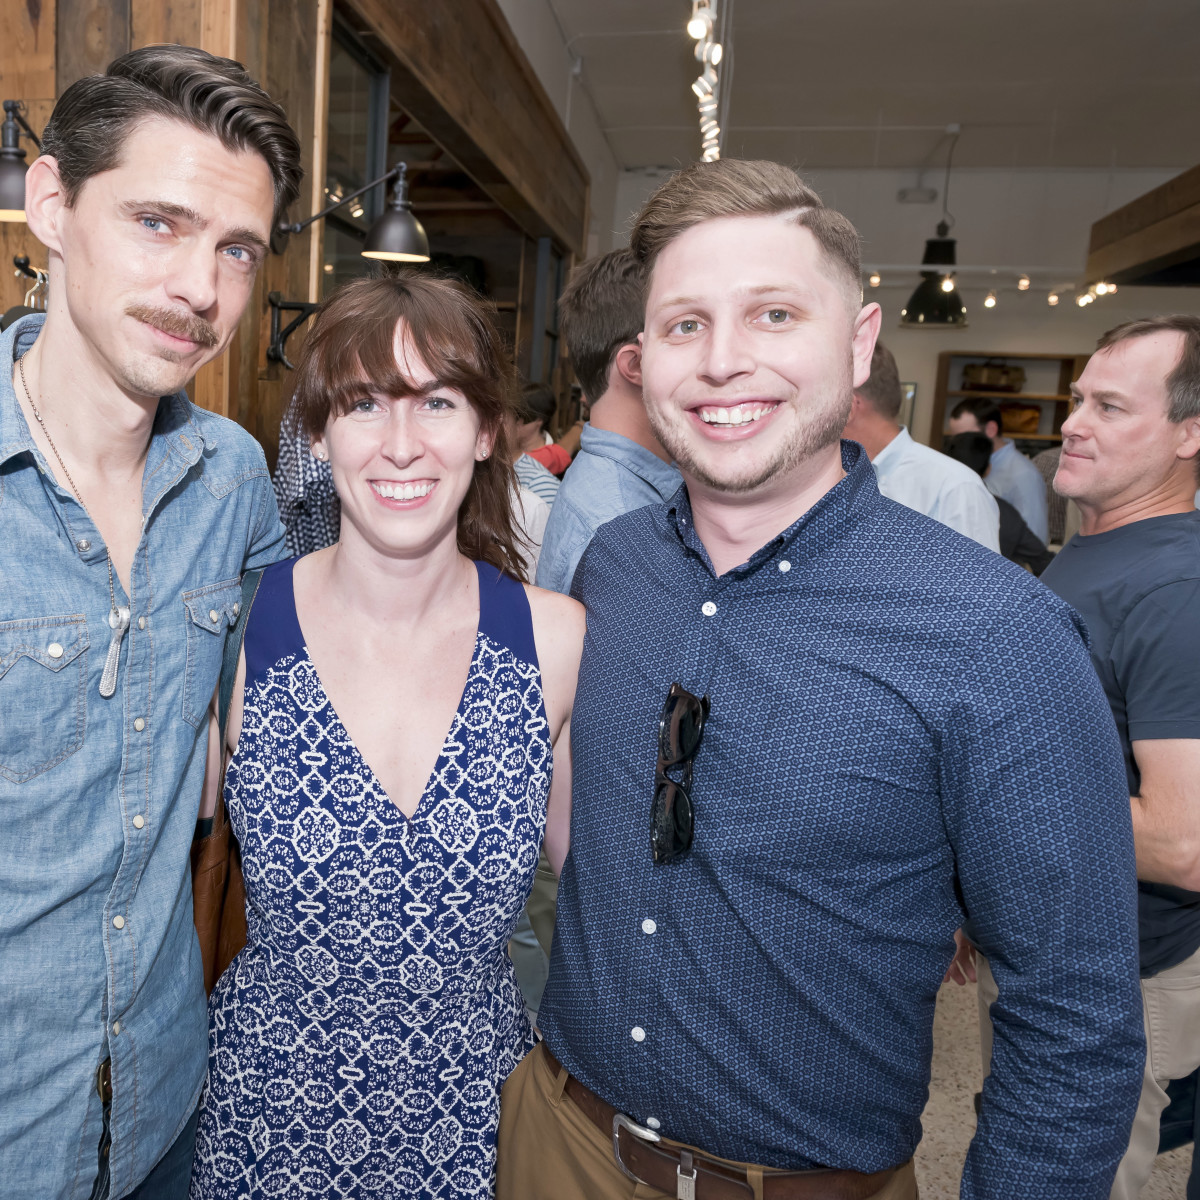 Houston, Stag Provisions opening party, June 2015, Ethan Smith, Sydnee Lucas, Kiko Velez